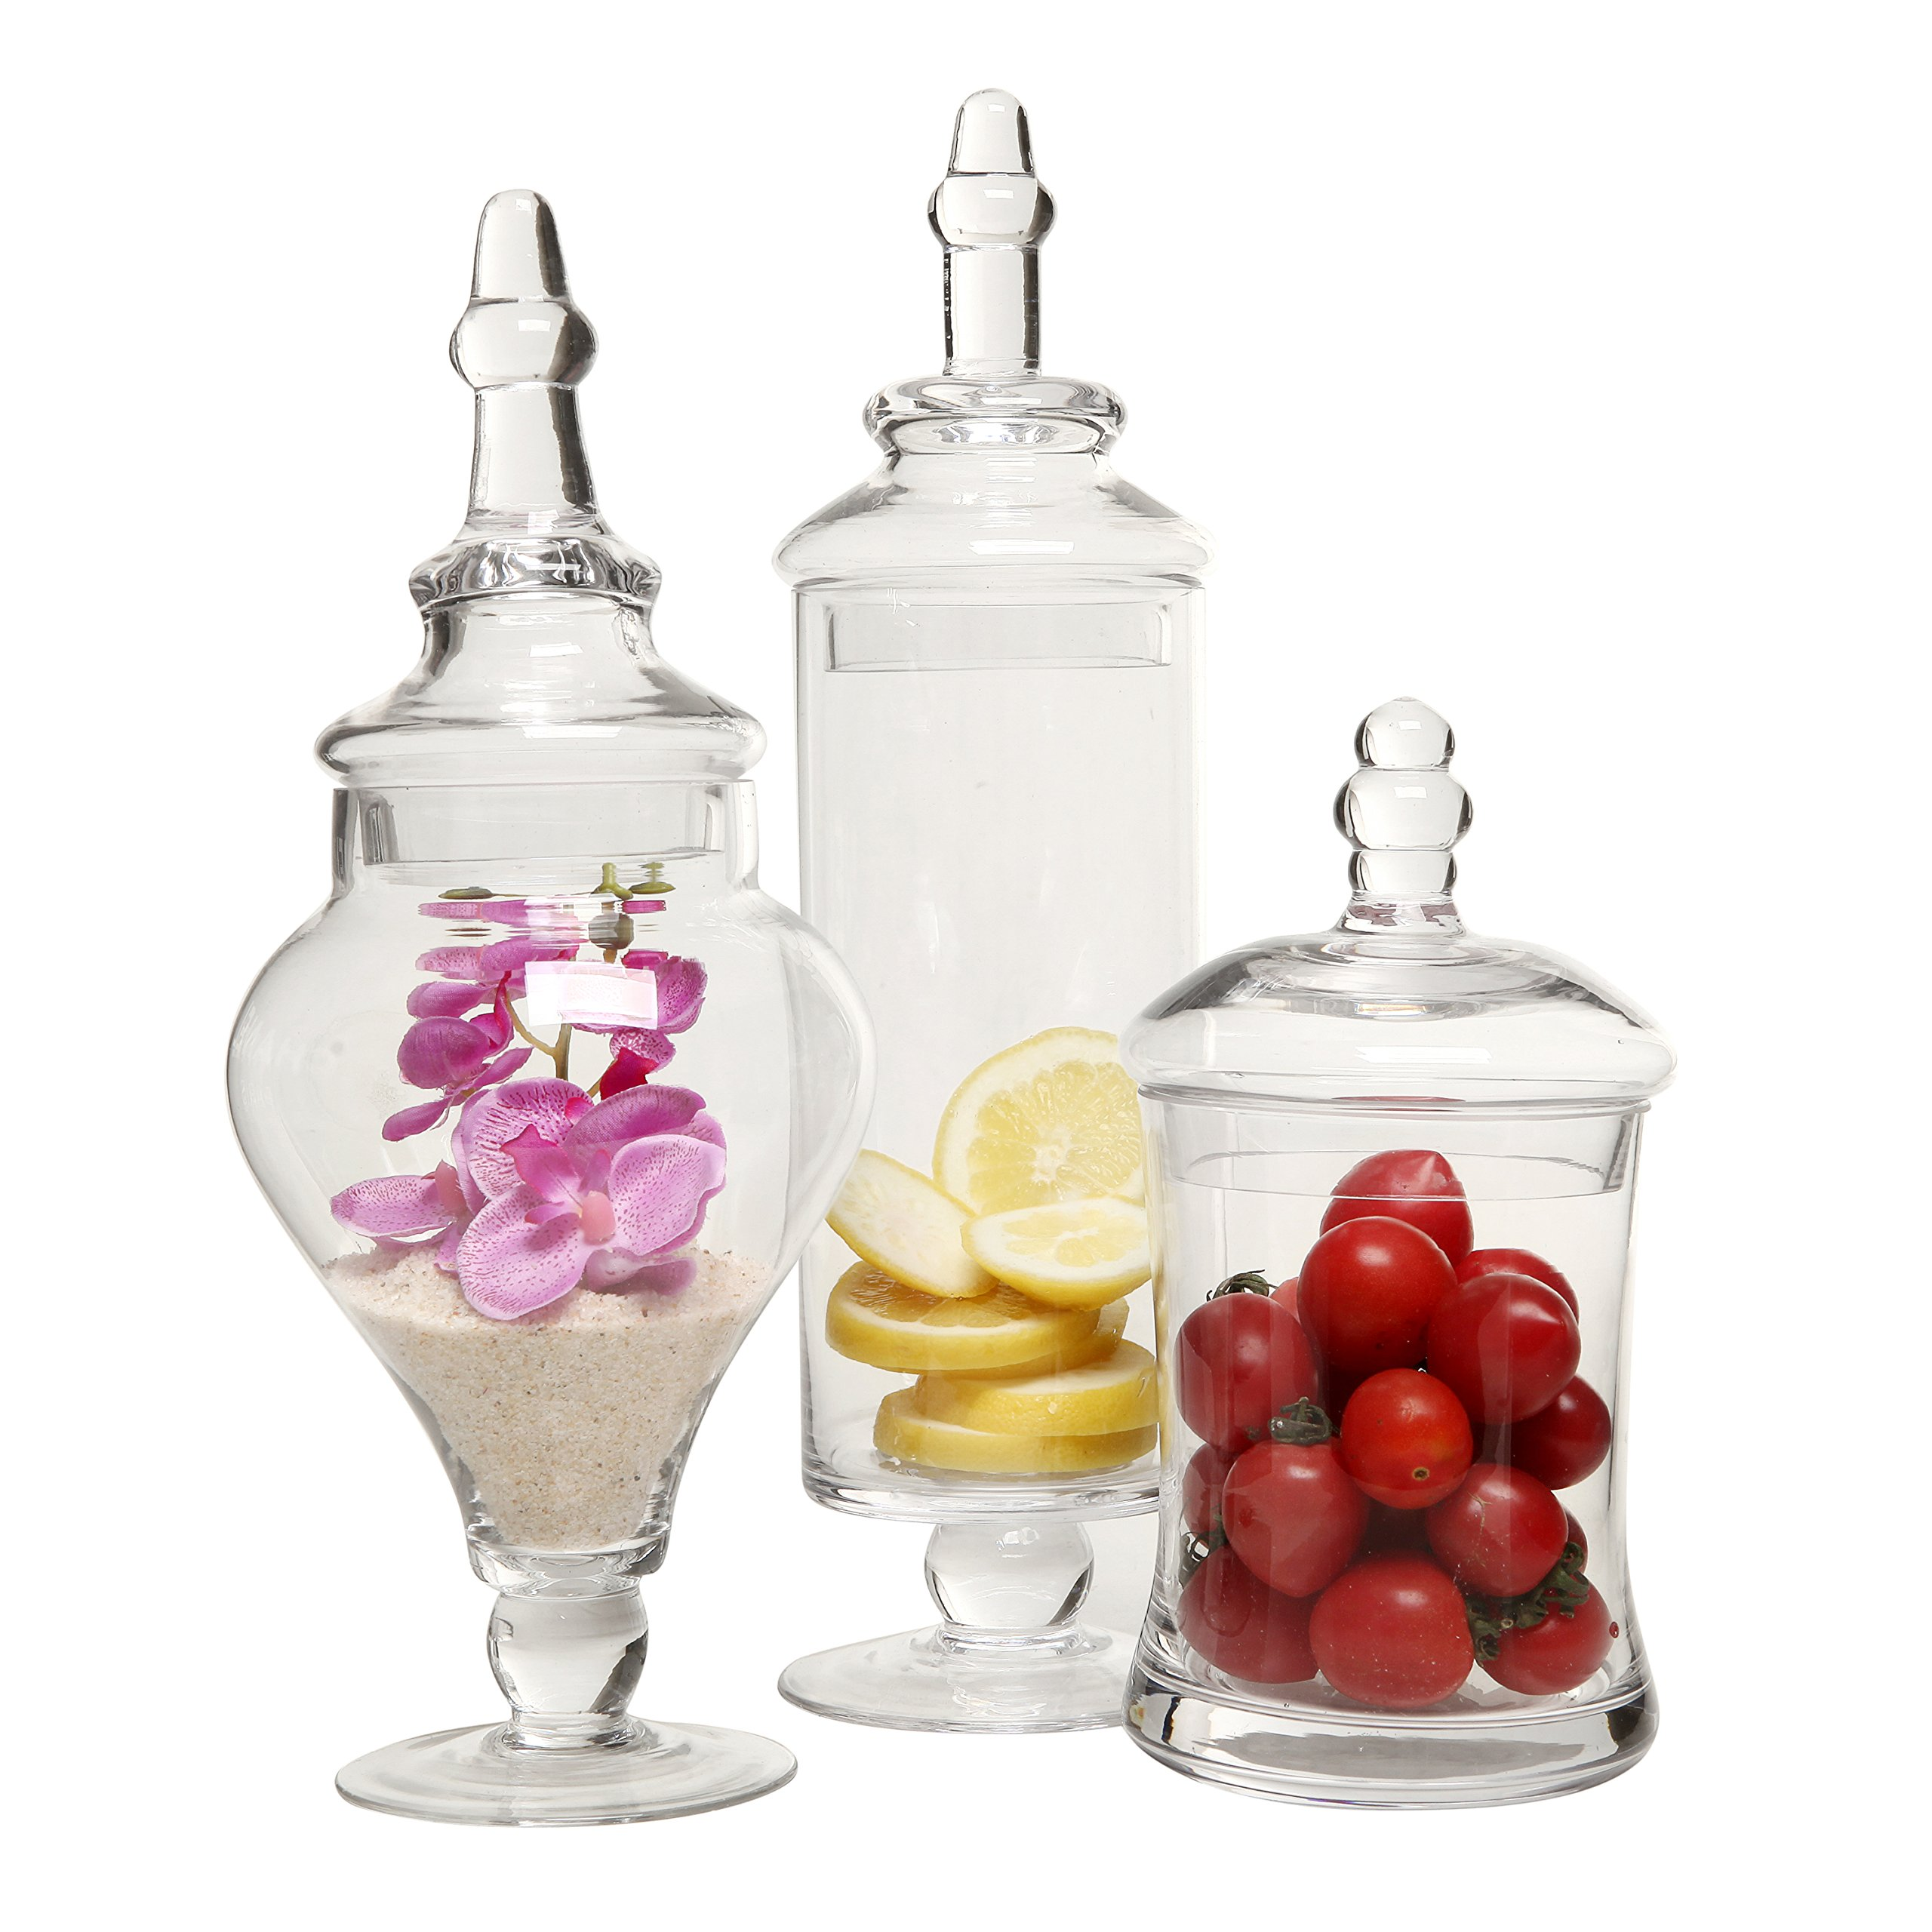 MyGift Designer Clear Glass Apothecary Jars (3 Piece Set) Decorative Weddings Candy Buffet by MyGift